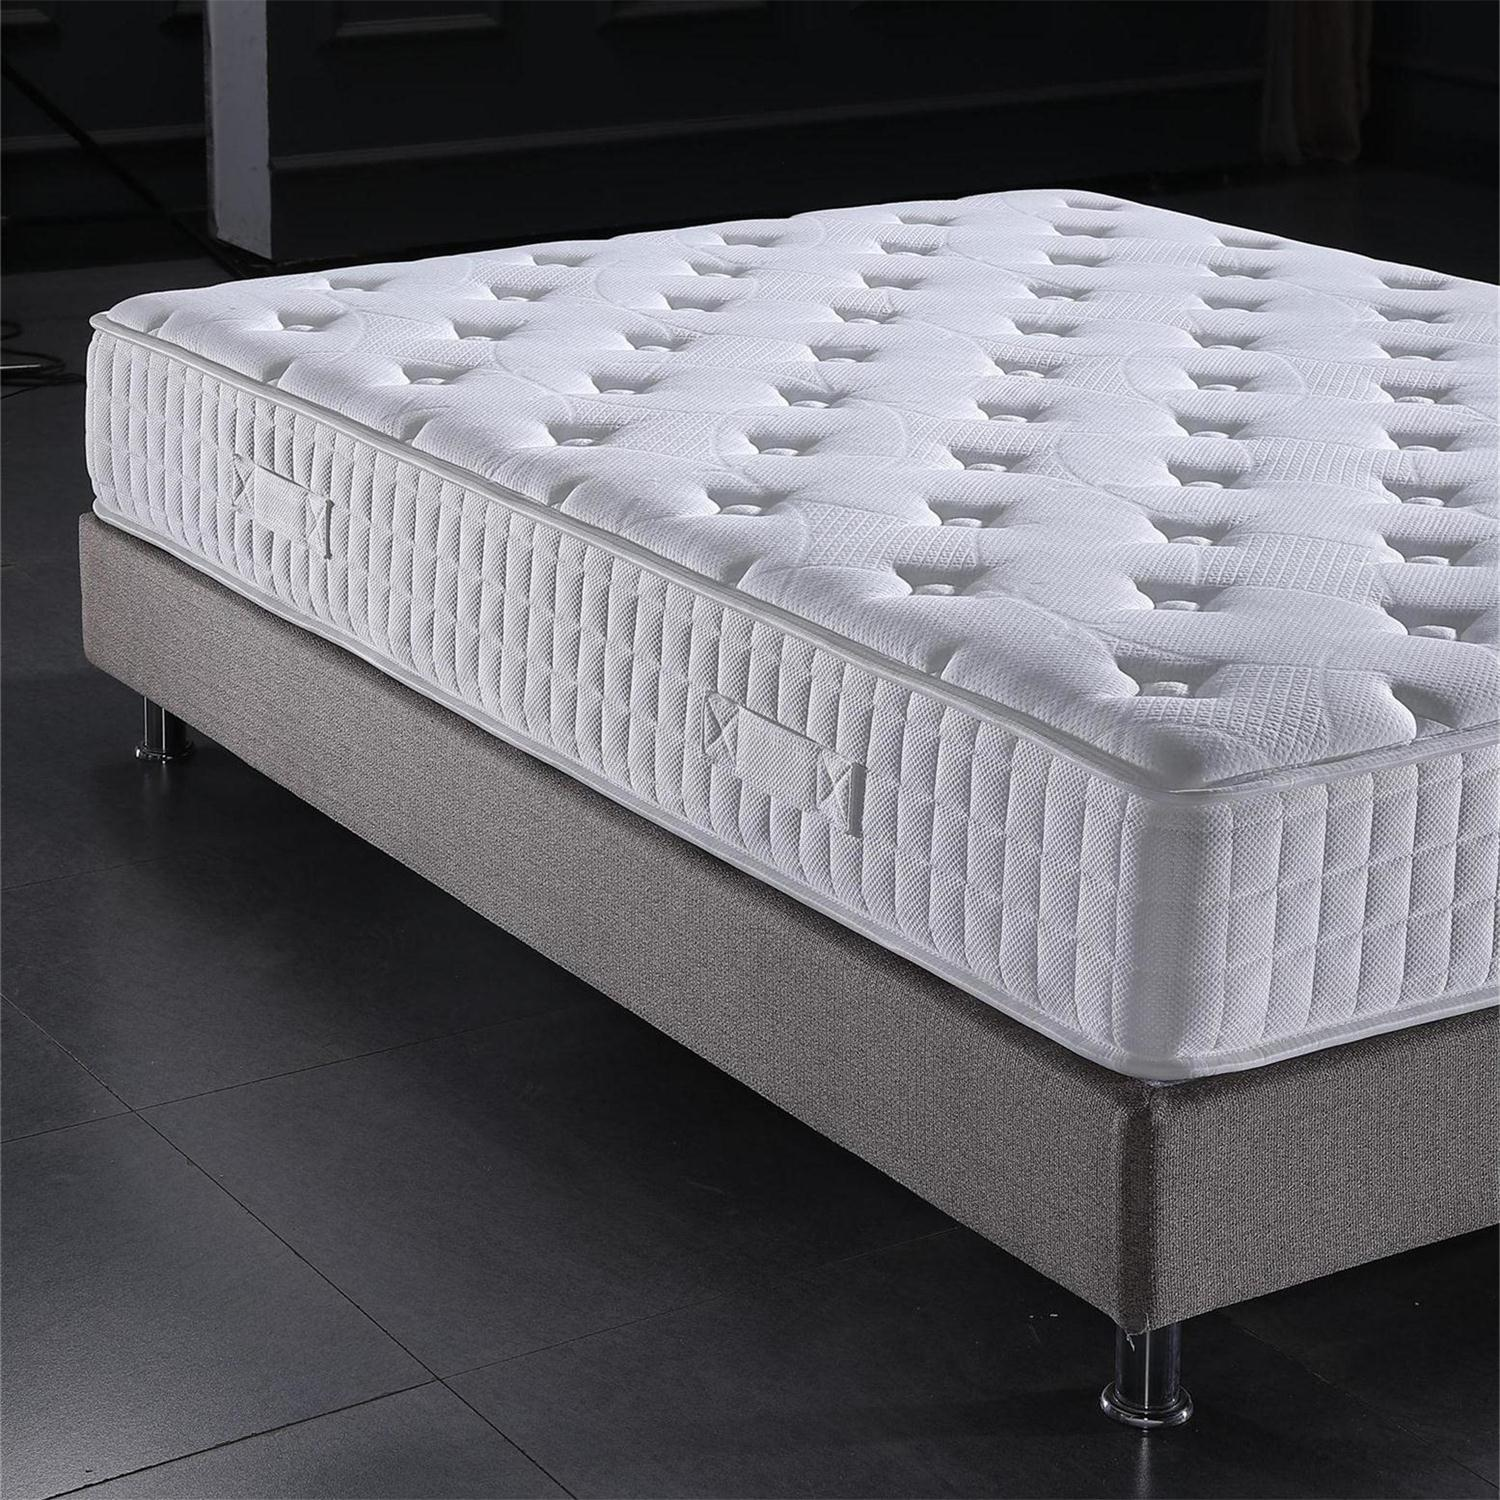 JLH-Fansace 21BA-01 | Hotel Mattress with Bonnel Spring Structure Soft Hardness-1